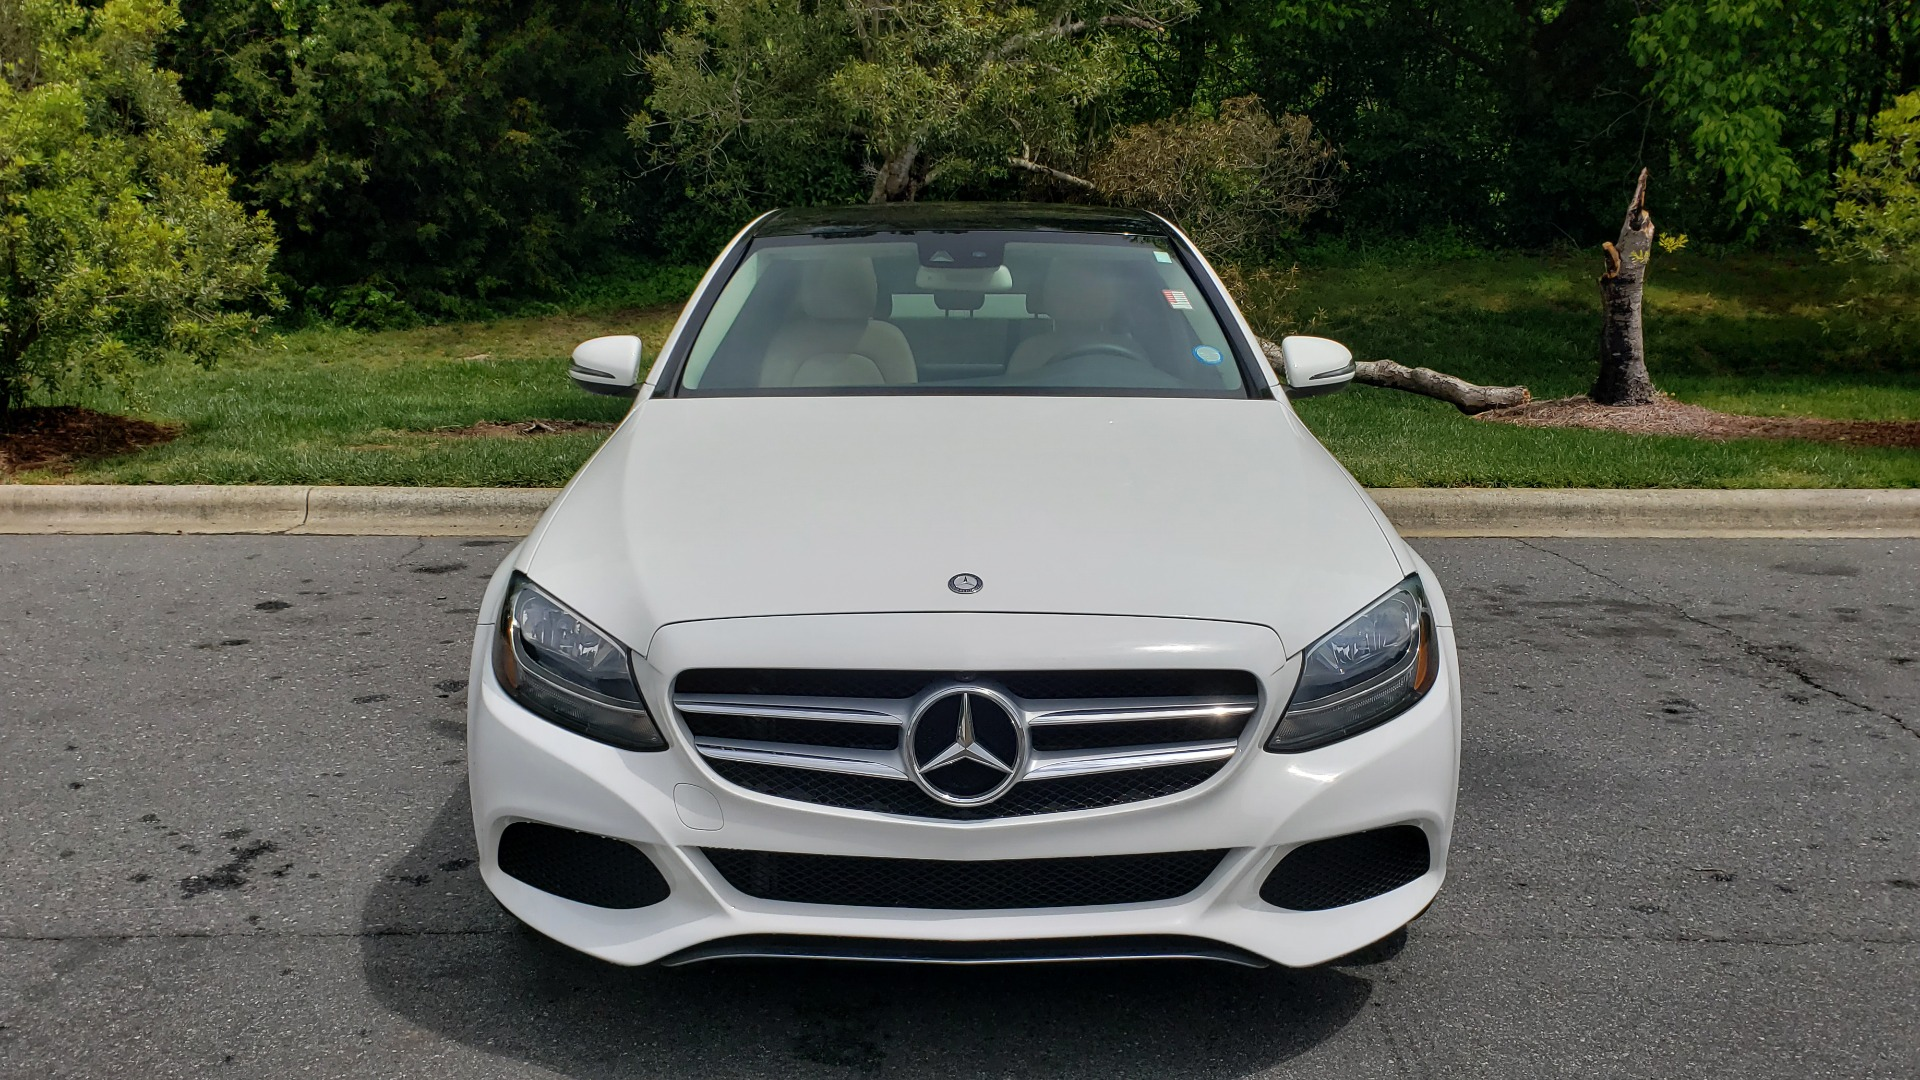 Used 2017 Mercedes-Benz C-Class C 300 PREMIUM / NAV / PANO-ROOF / HTD STS / REARVIEW for sale Sold at Formula Imports in Charlotte NC 28227 17